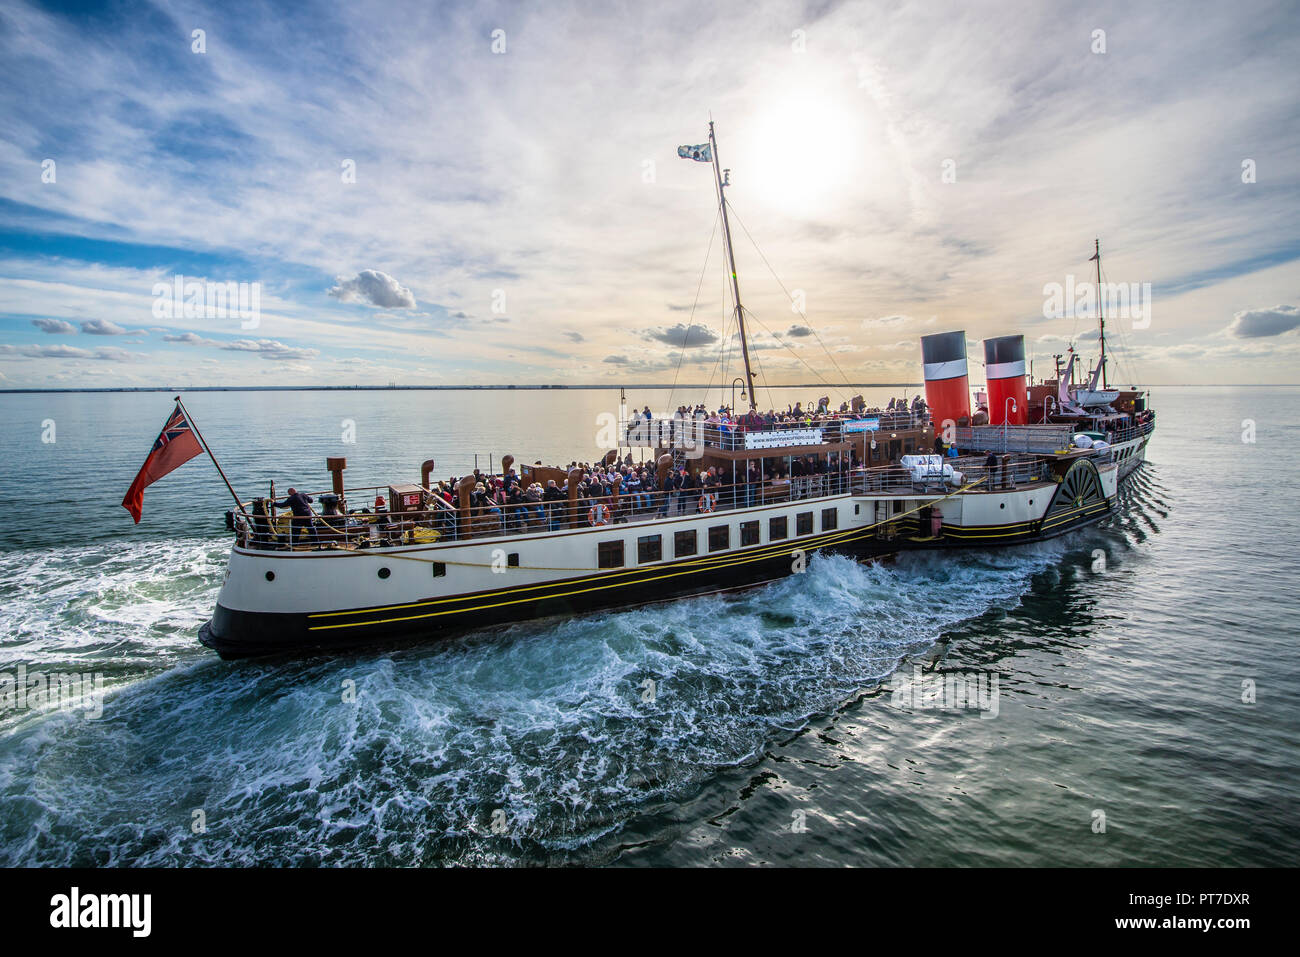 paddle-steamer-waverley-pulling-away-from-southend-pier-on-the-thames-estuary-with-passengers-heading-towards-london-space-for-copy-PT7DXR.jpg